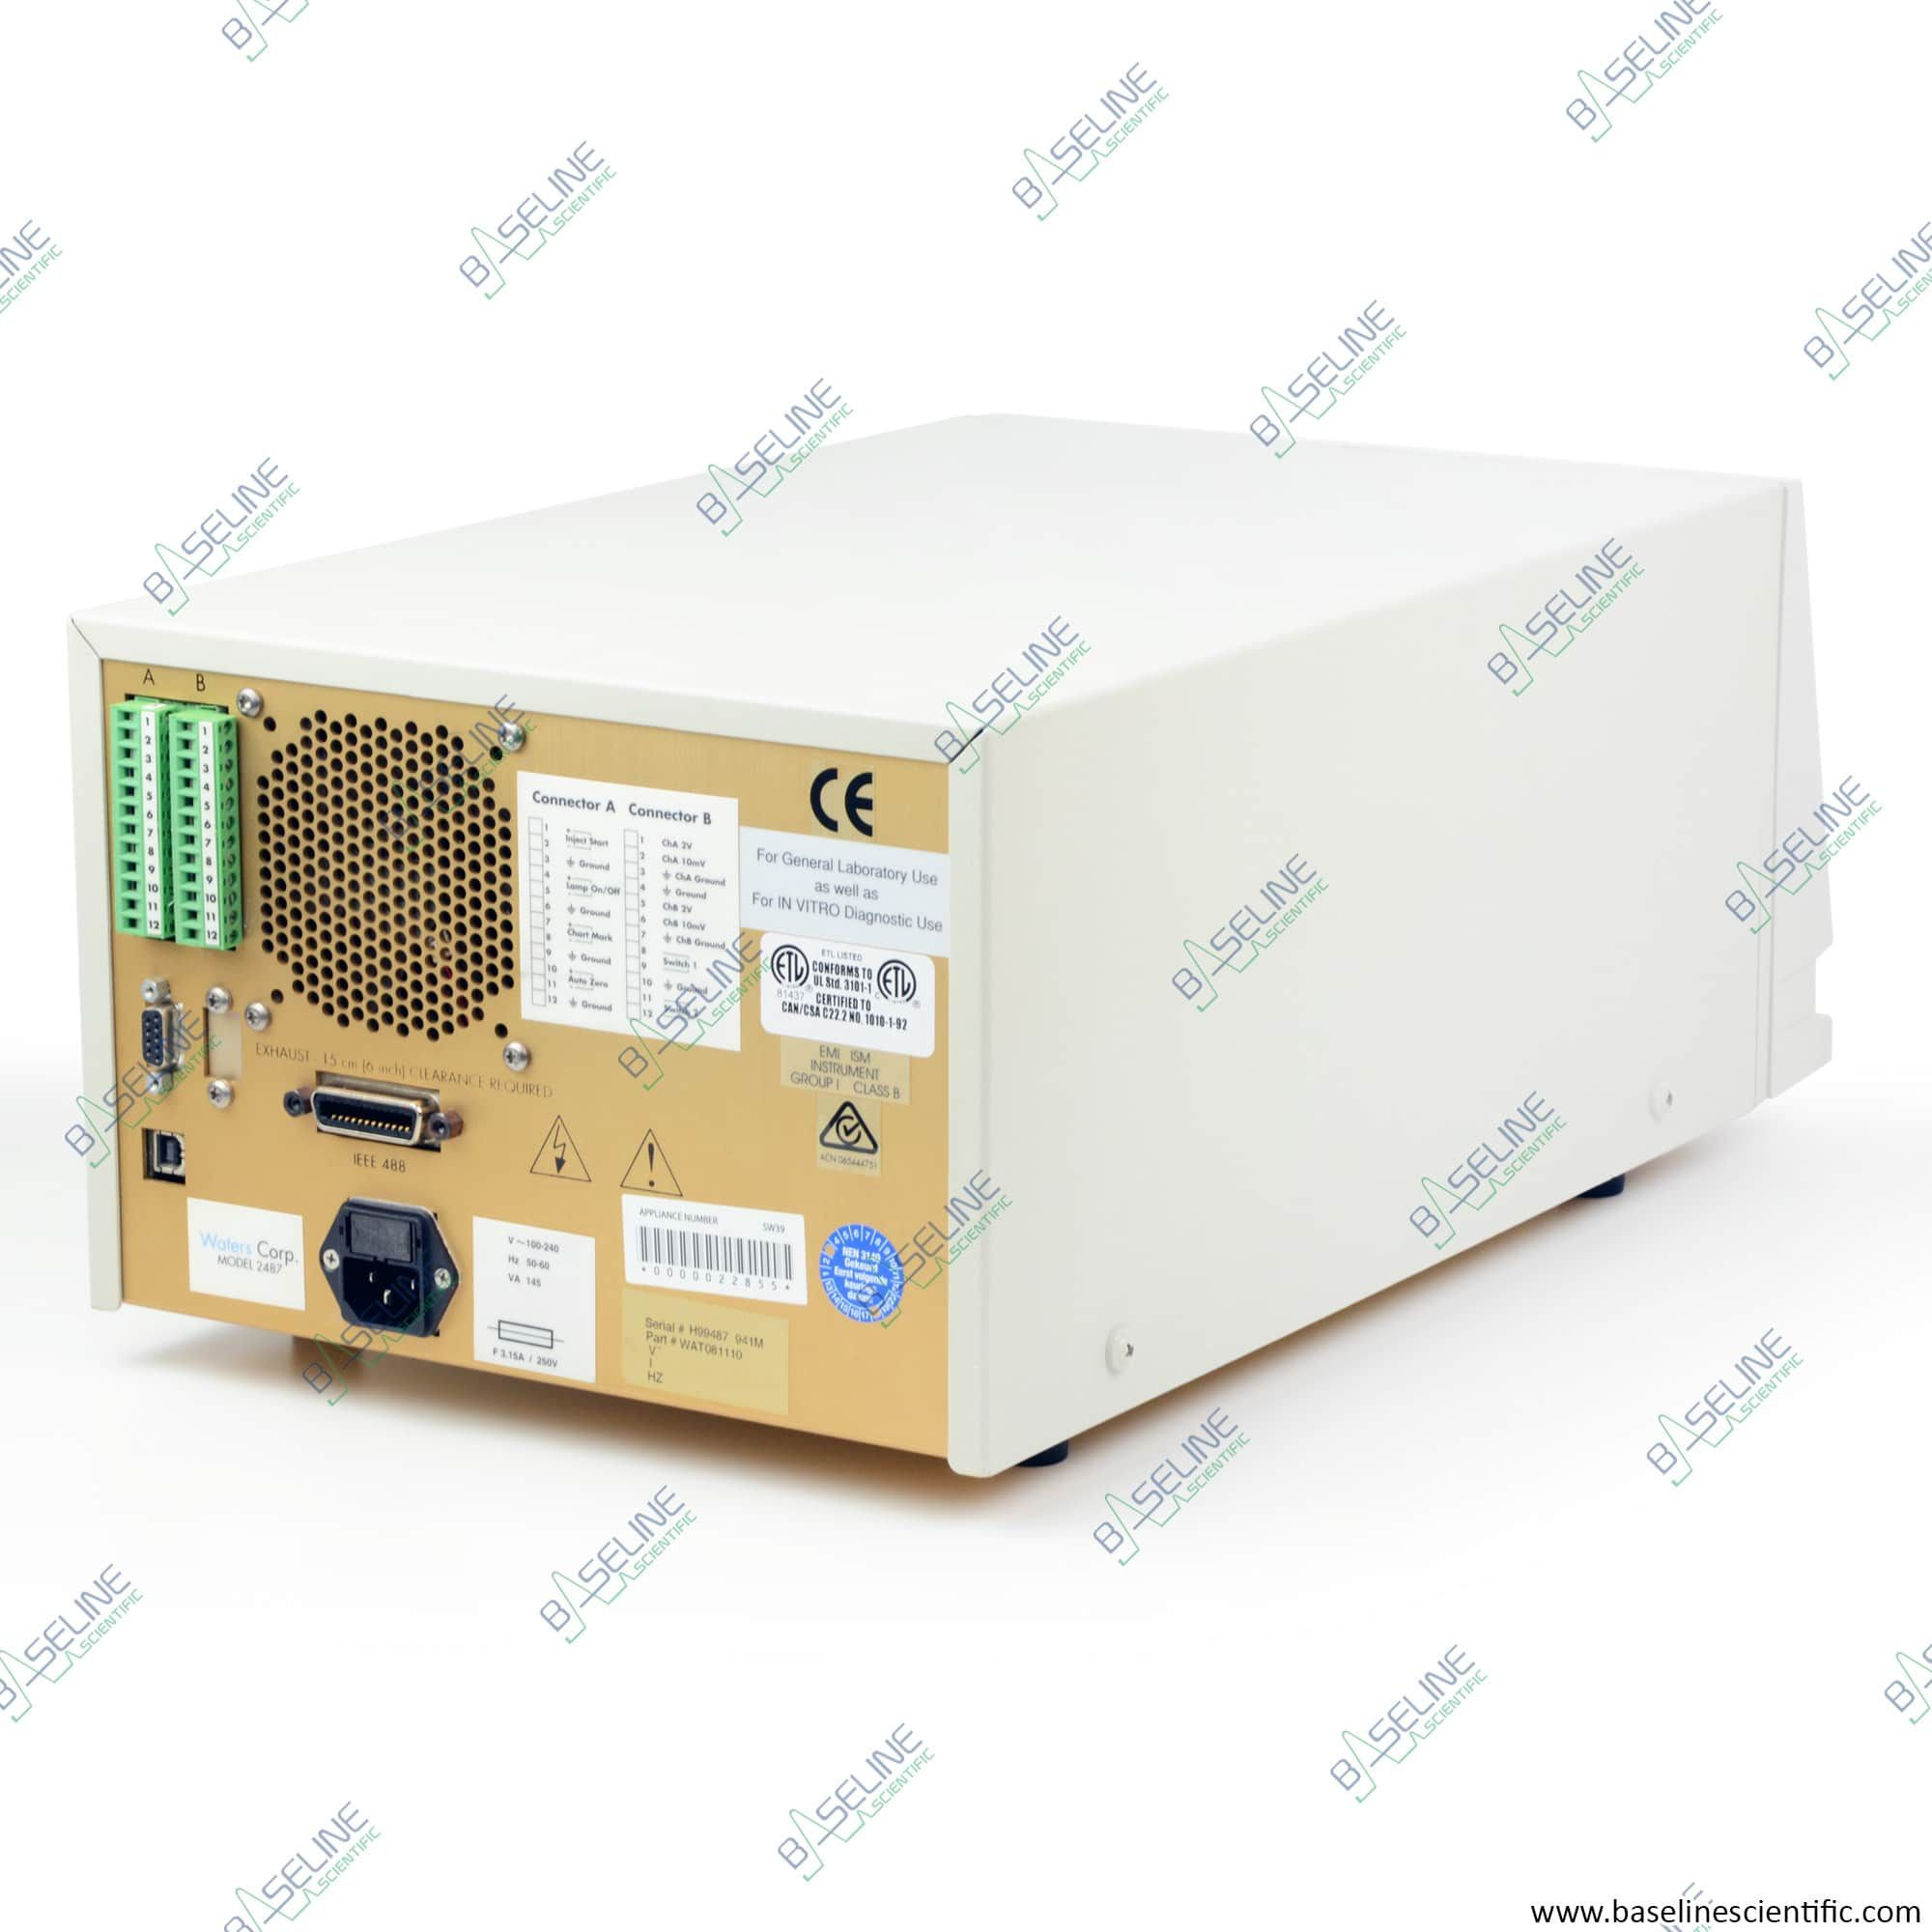 Refurbished Waters Alliance HT 2795 and 2487 DAD with ONE YEAR WARRANTY